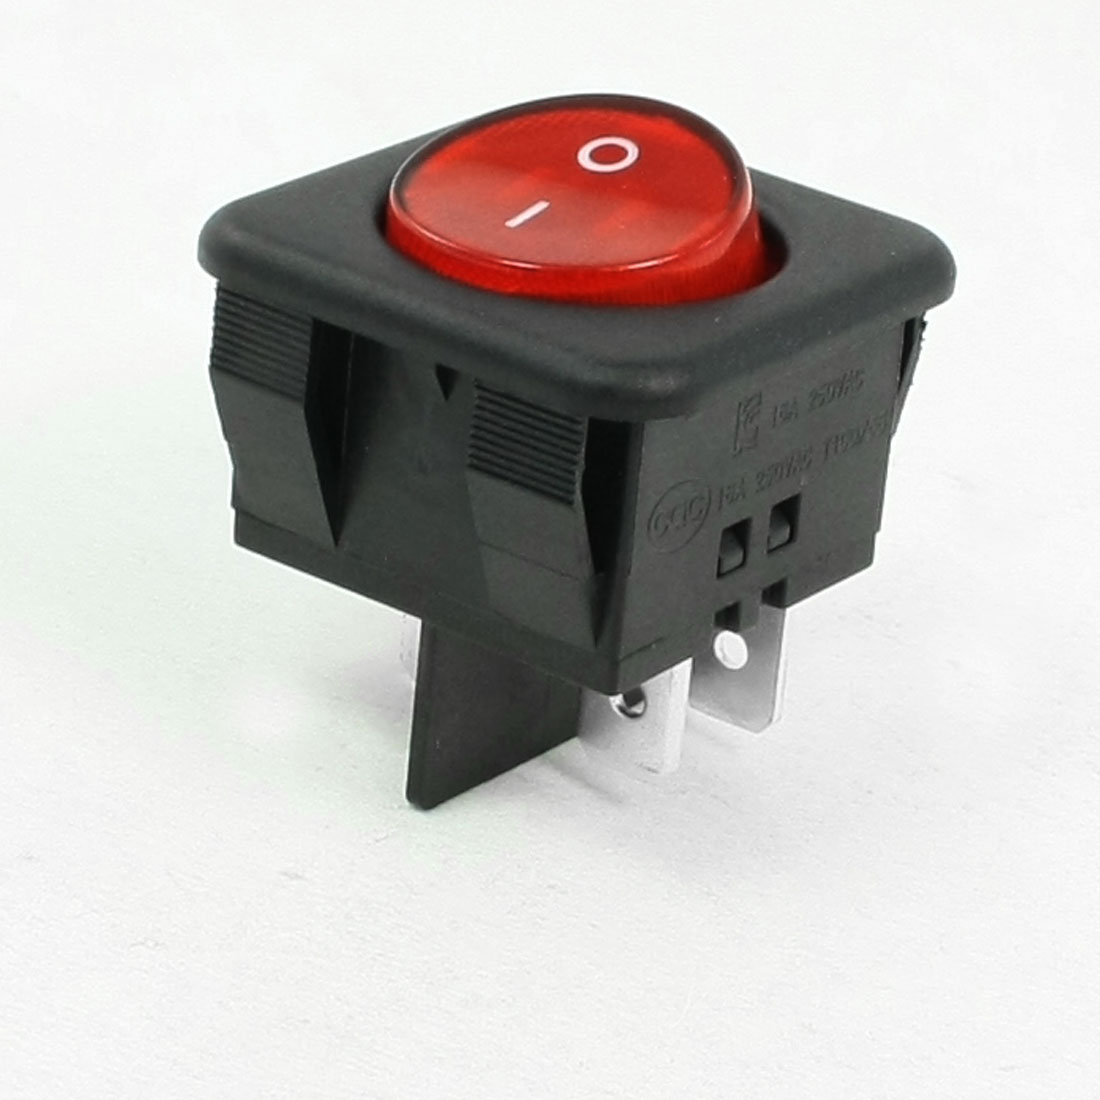 AC 16A 250V DPST ON/OFF 4 Pins Round Rocker Boat Switch Red